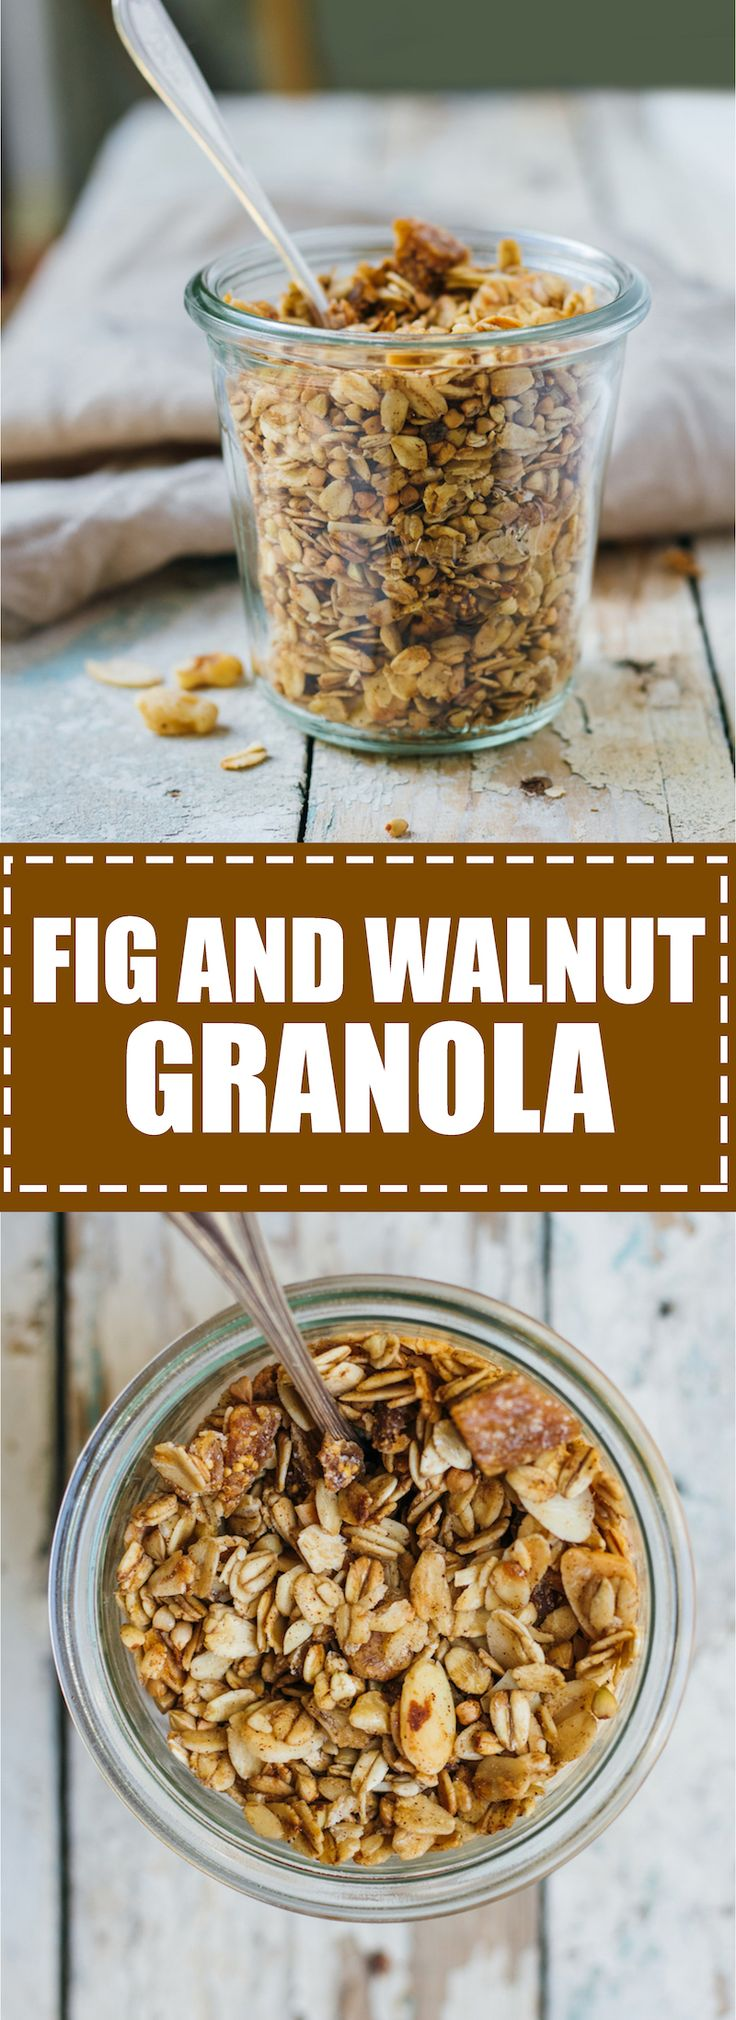 This is fig and walnut granola is loaded with comforting spices and chewy dried figs. It's also healthy and vegan!